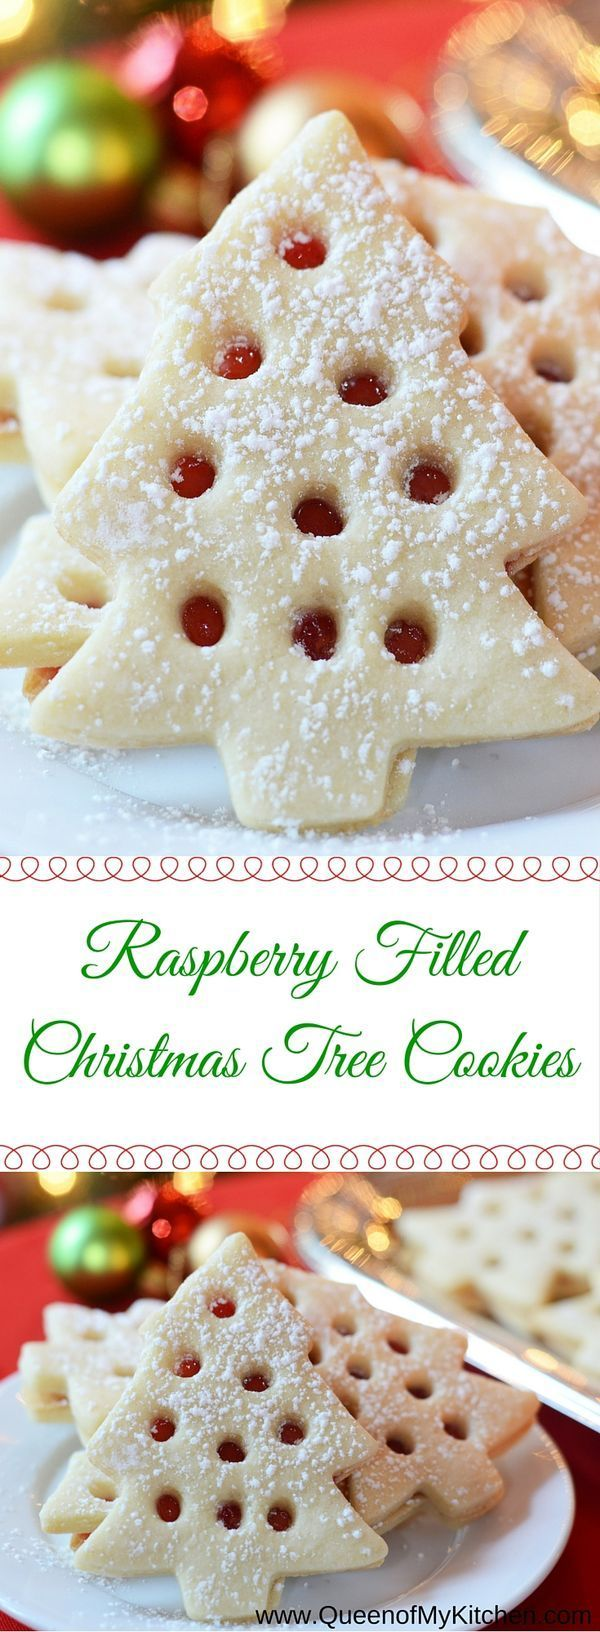 Skip the mess involved in decorating Christmas cookies with icing. These Raspberry Filled Christmas Tree cookies are just as beautiful as iced Christmas cookies but require less time and skill and don't make nearly the mess. | http://QueenofMyKitchen.com